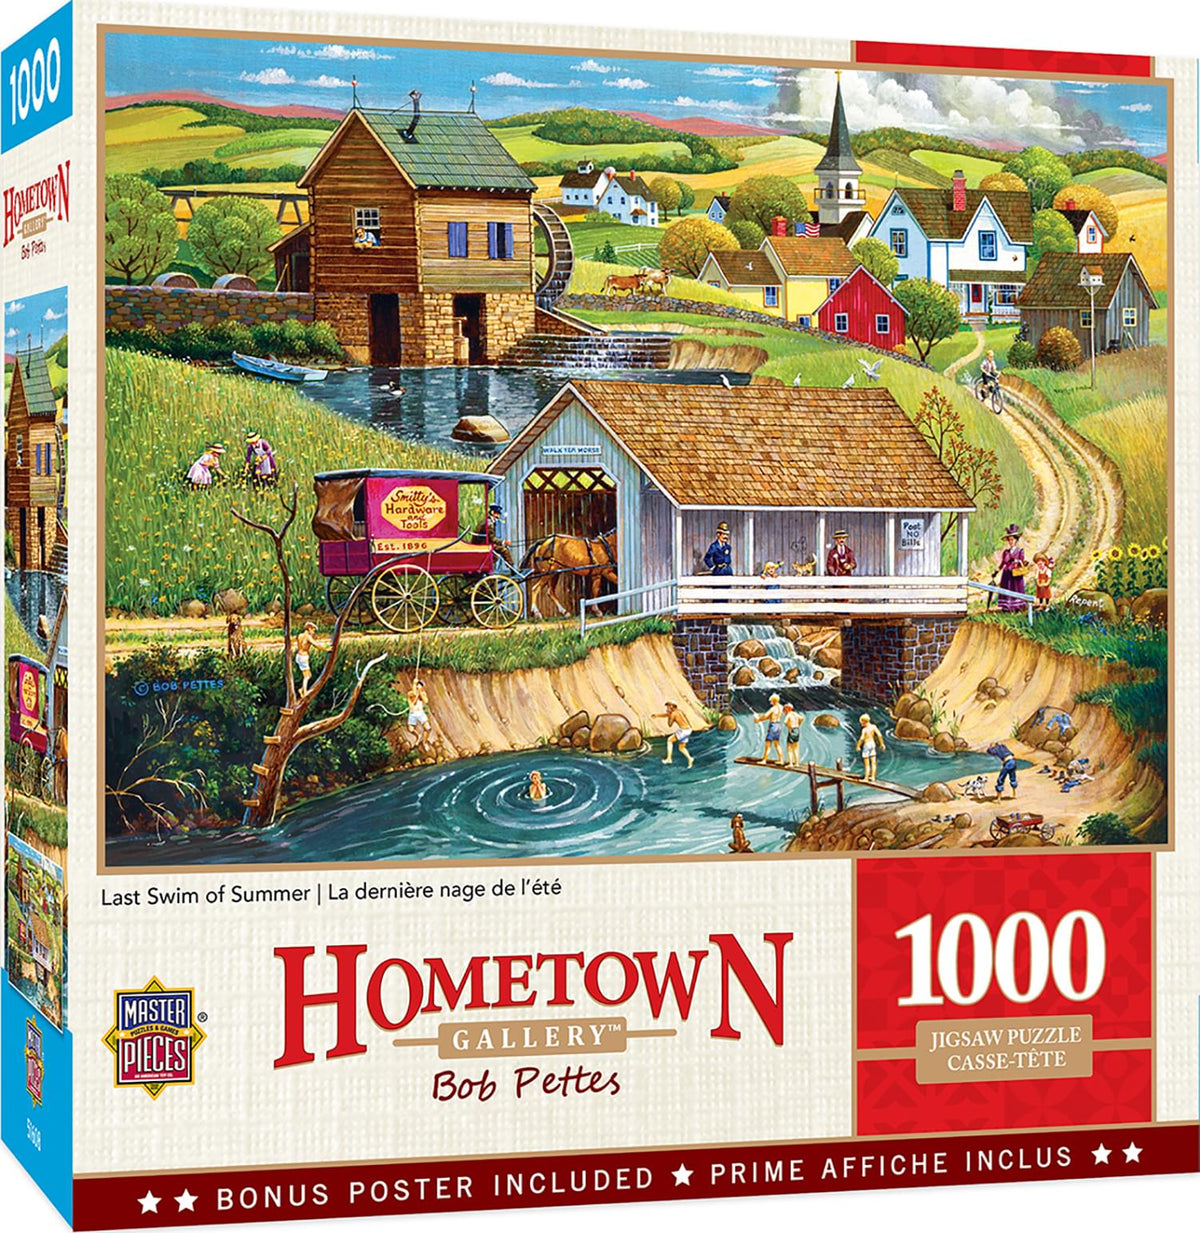 Hometown Gallery Last Swim of Summer 1000 Piece Jigsaw Puzzle